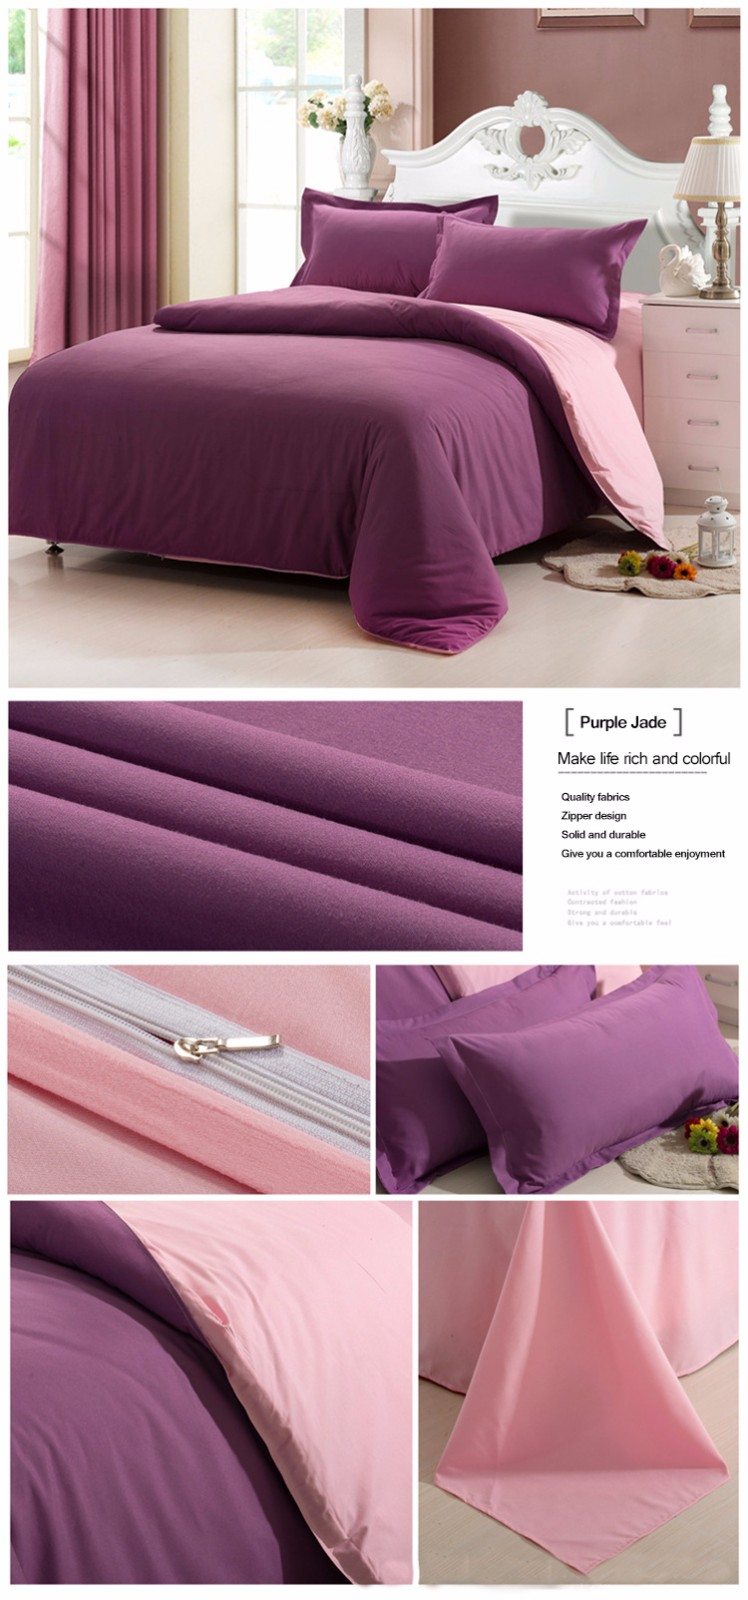 Honana WX-8368 4Pcs Solid Color Bedding Sets Duvet Cover Sets Bed Linen Include Bed Sheet Pillowcase